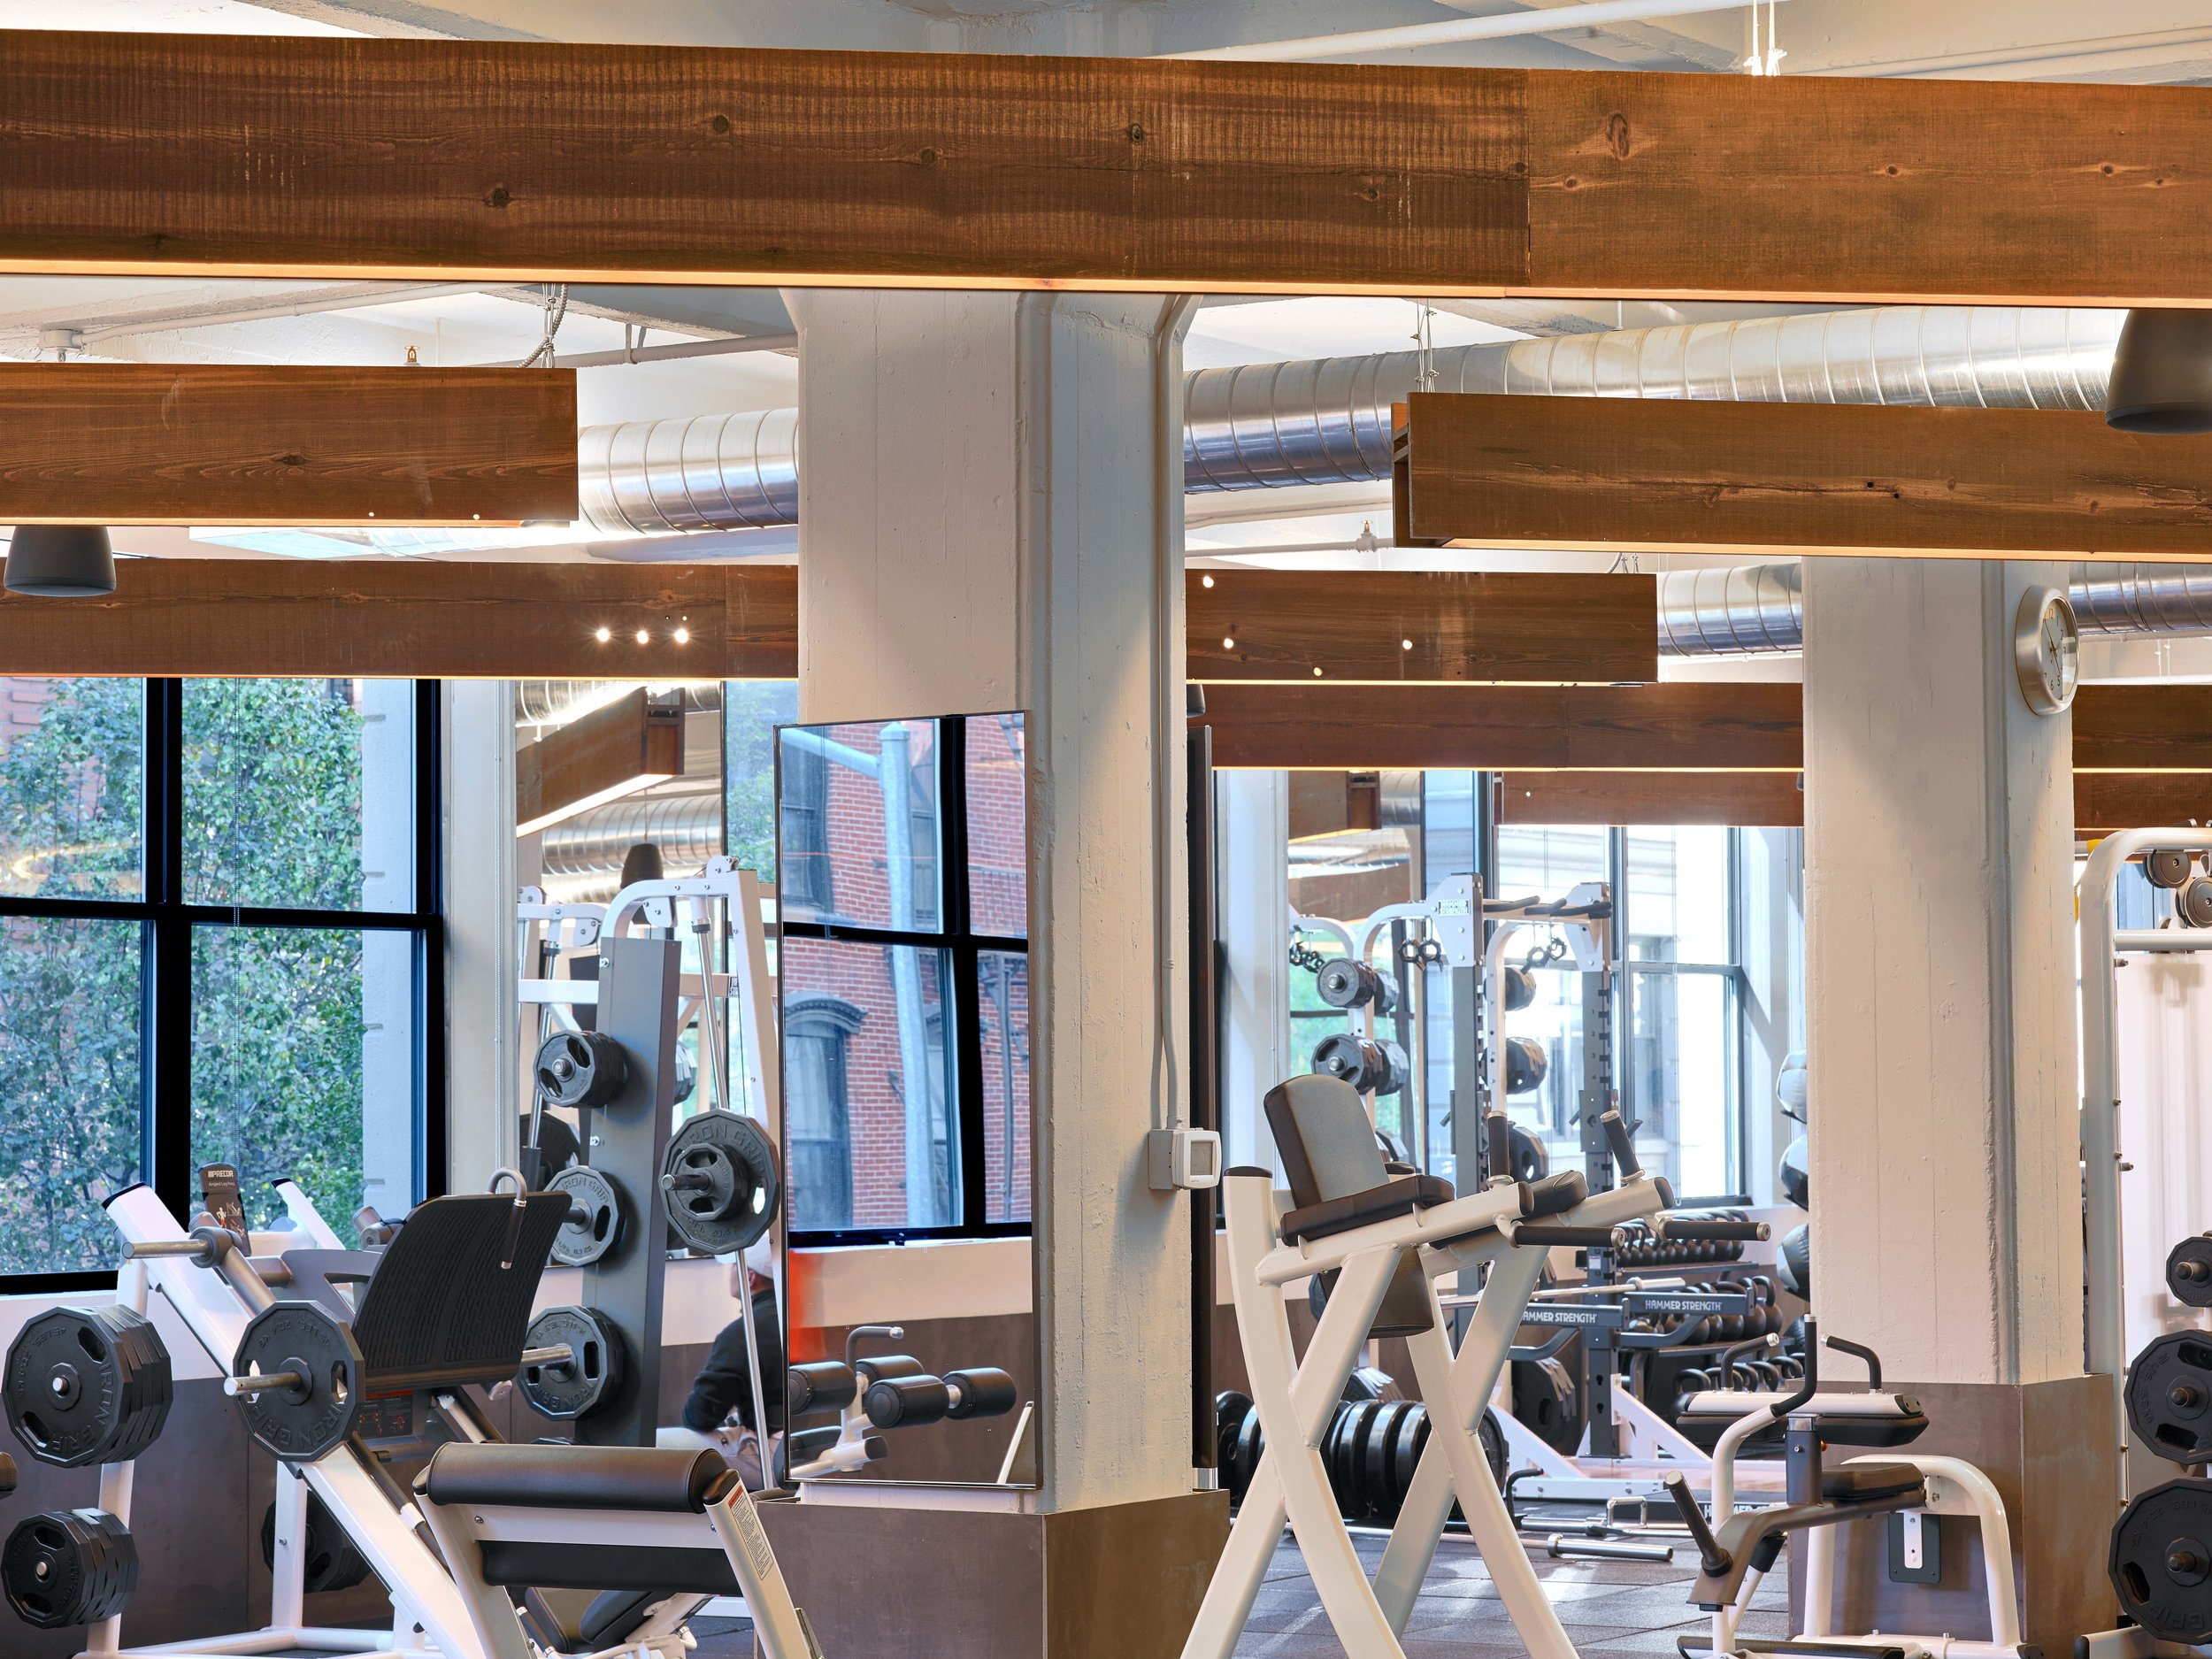 Equinox Dumbo Free Weight Area